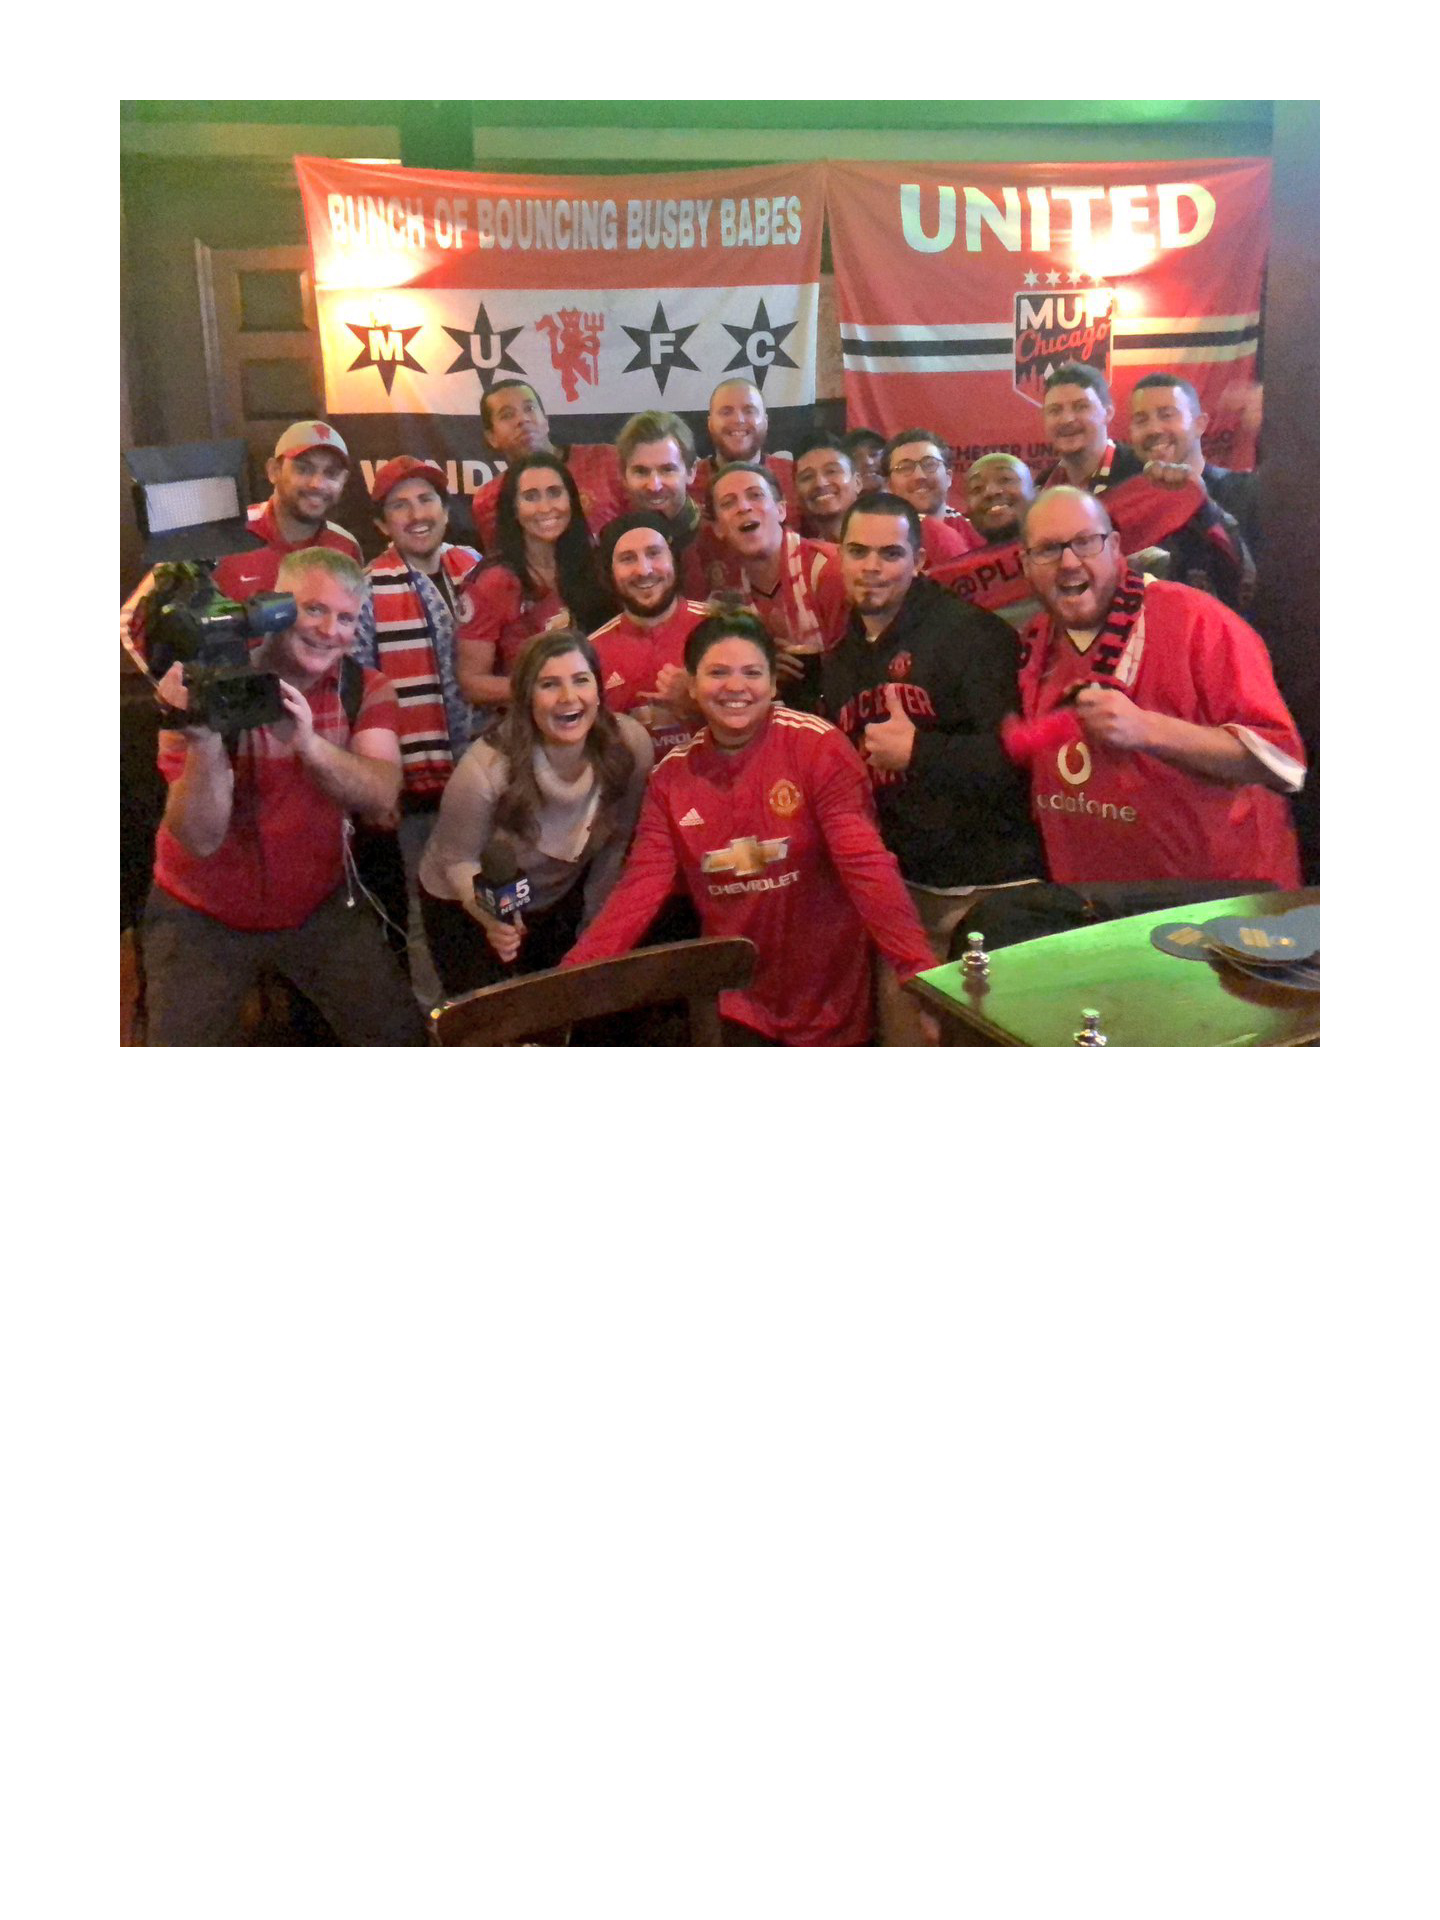 Watch all Manchester United matches with us at Fado Irish Pub in Chicago!